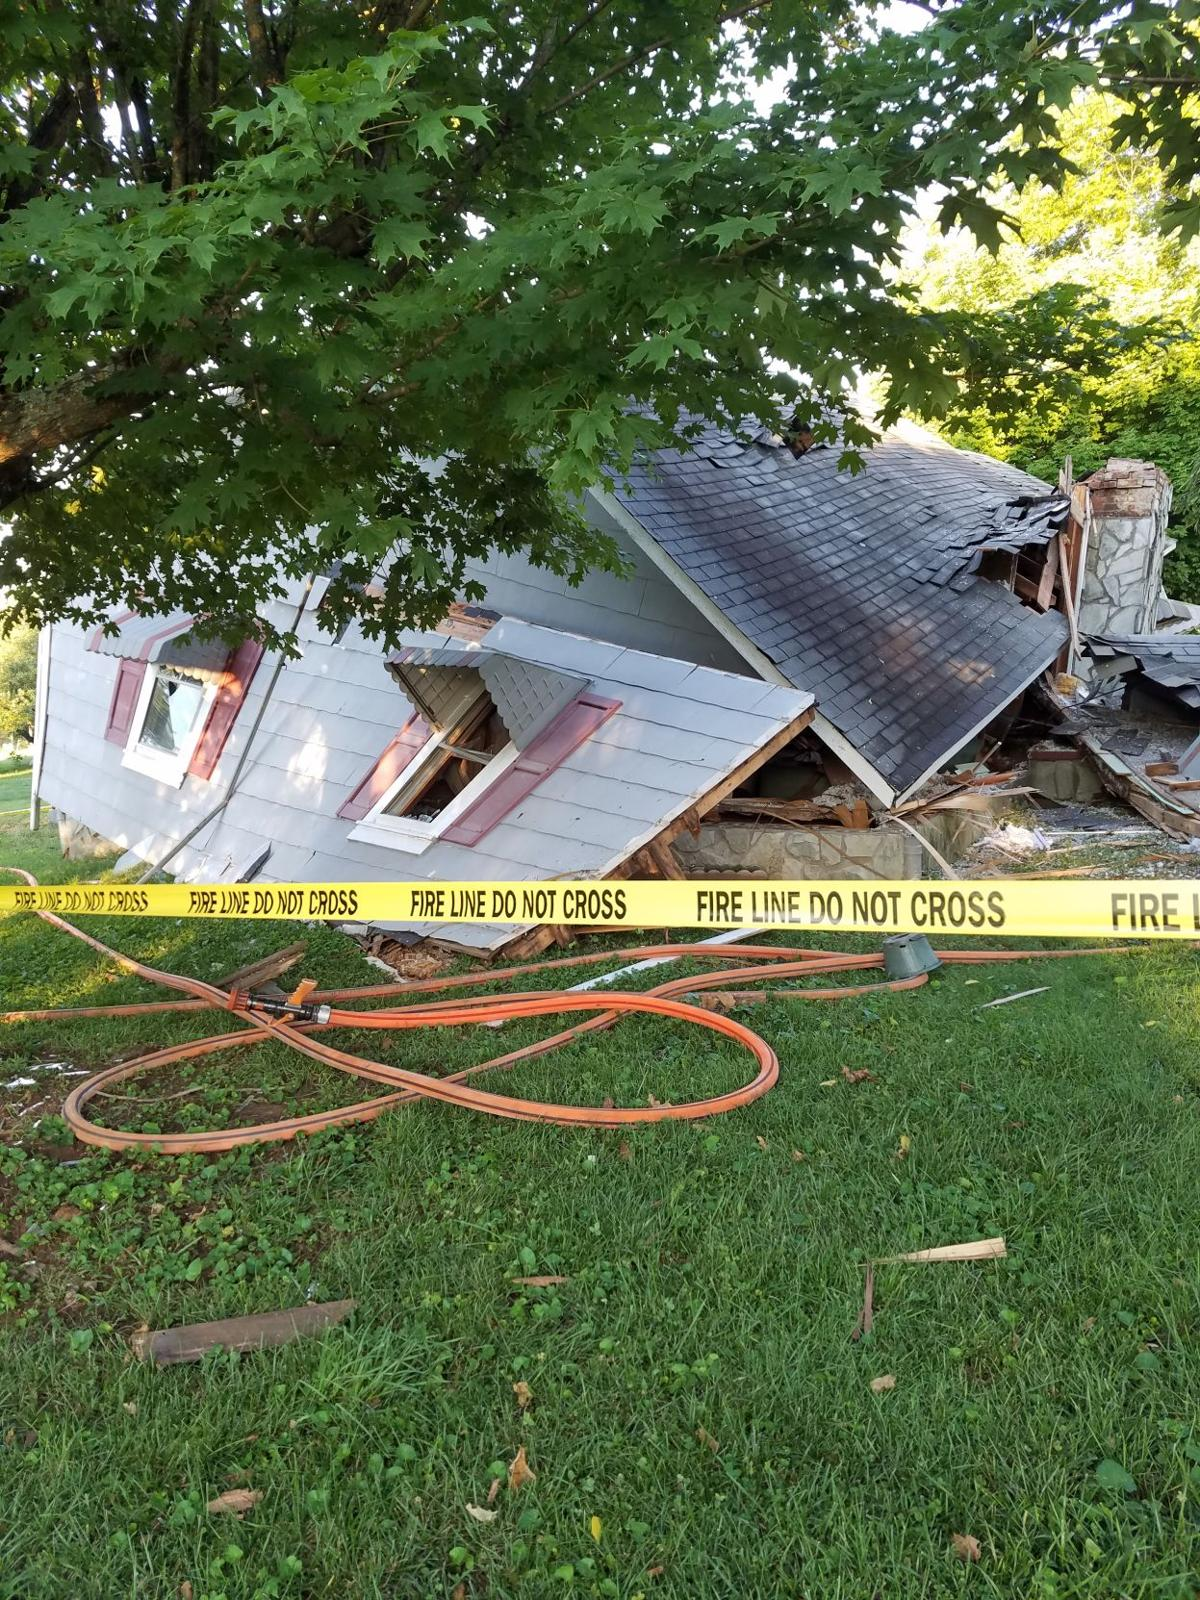 Gas leak explosion knocks out wall, causes partial collapse of home